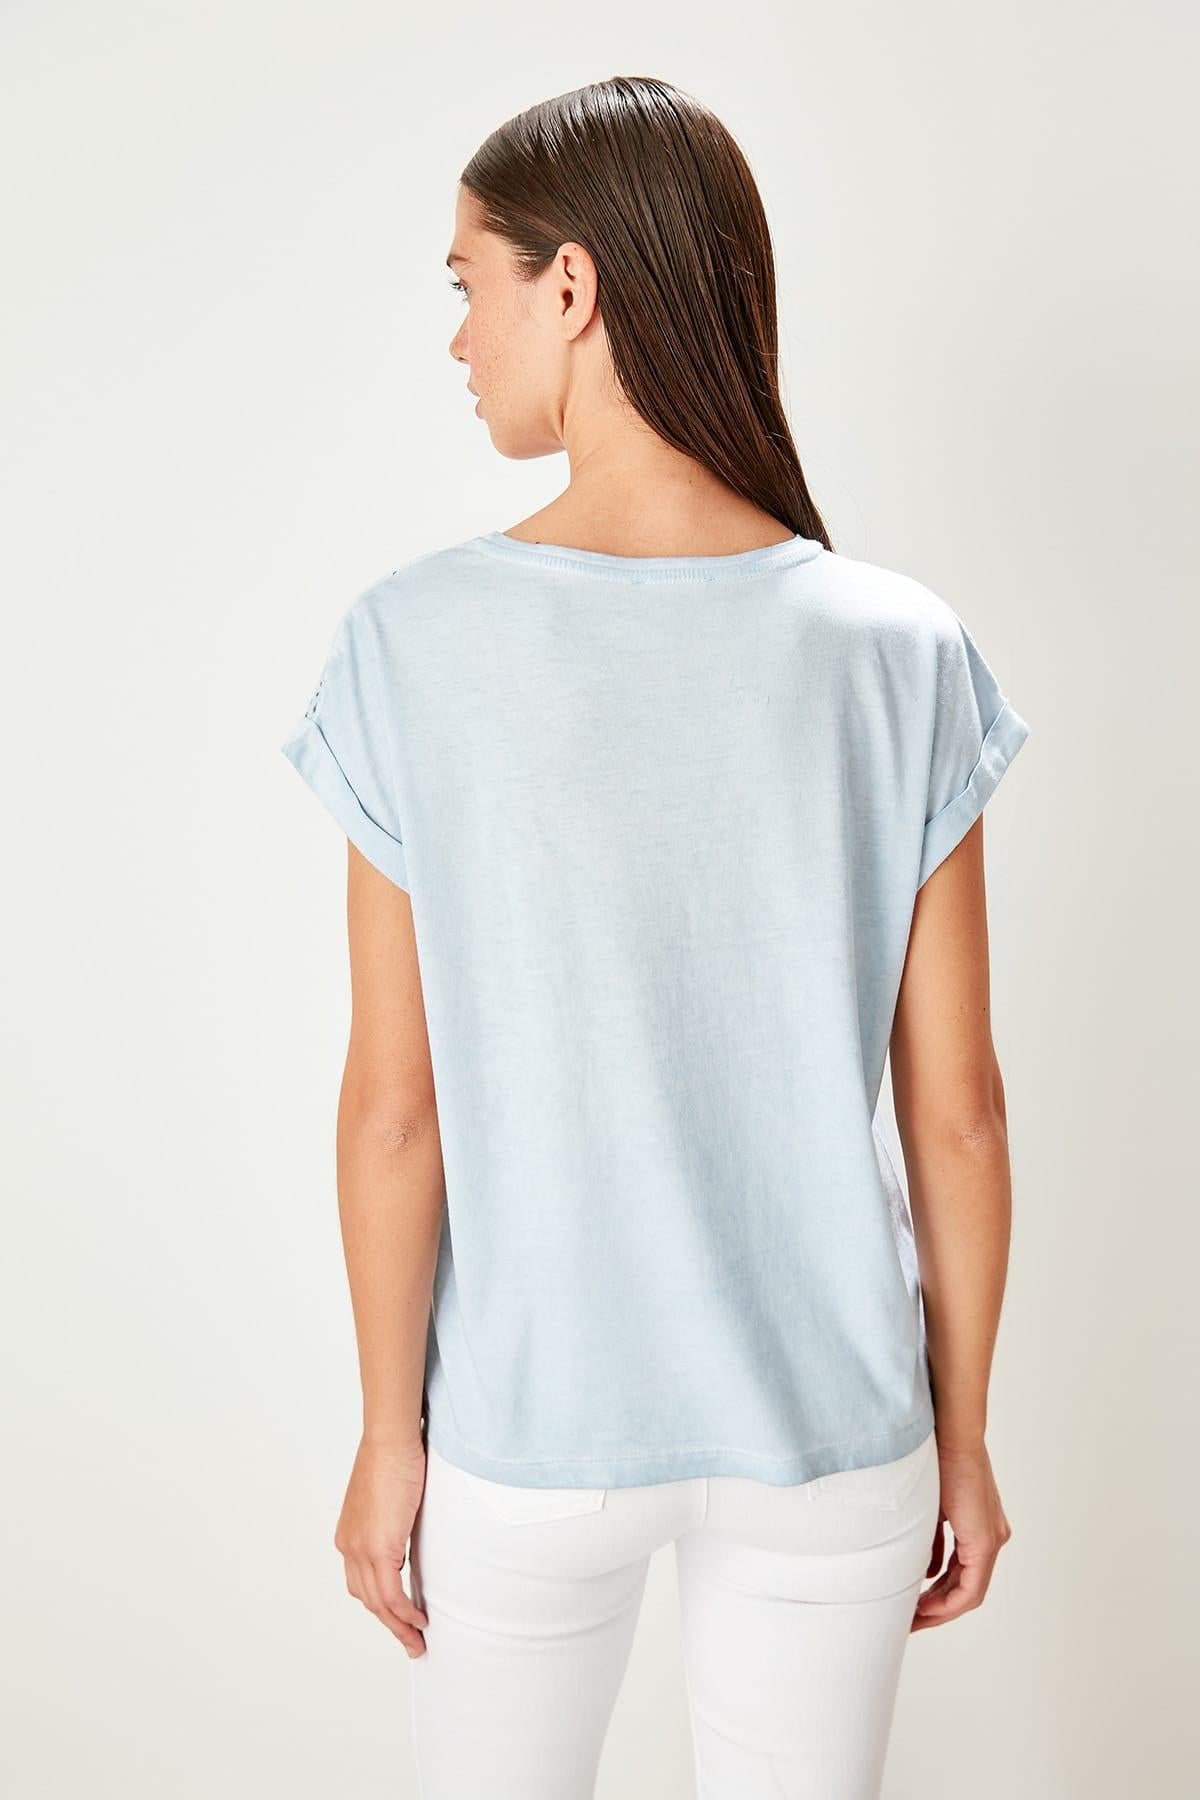 Blue Embroideries Flushing Basic Knitted T-Shirts - emuuz.com